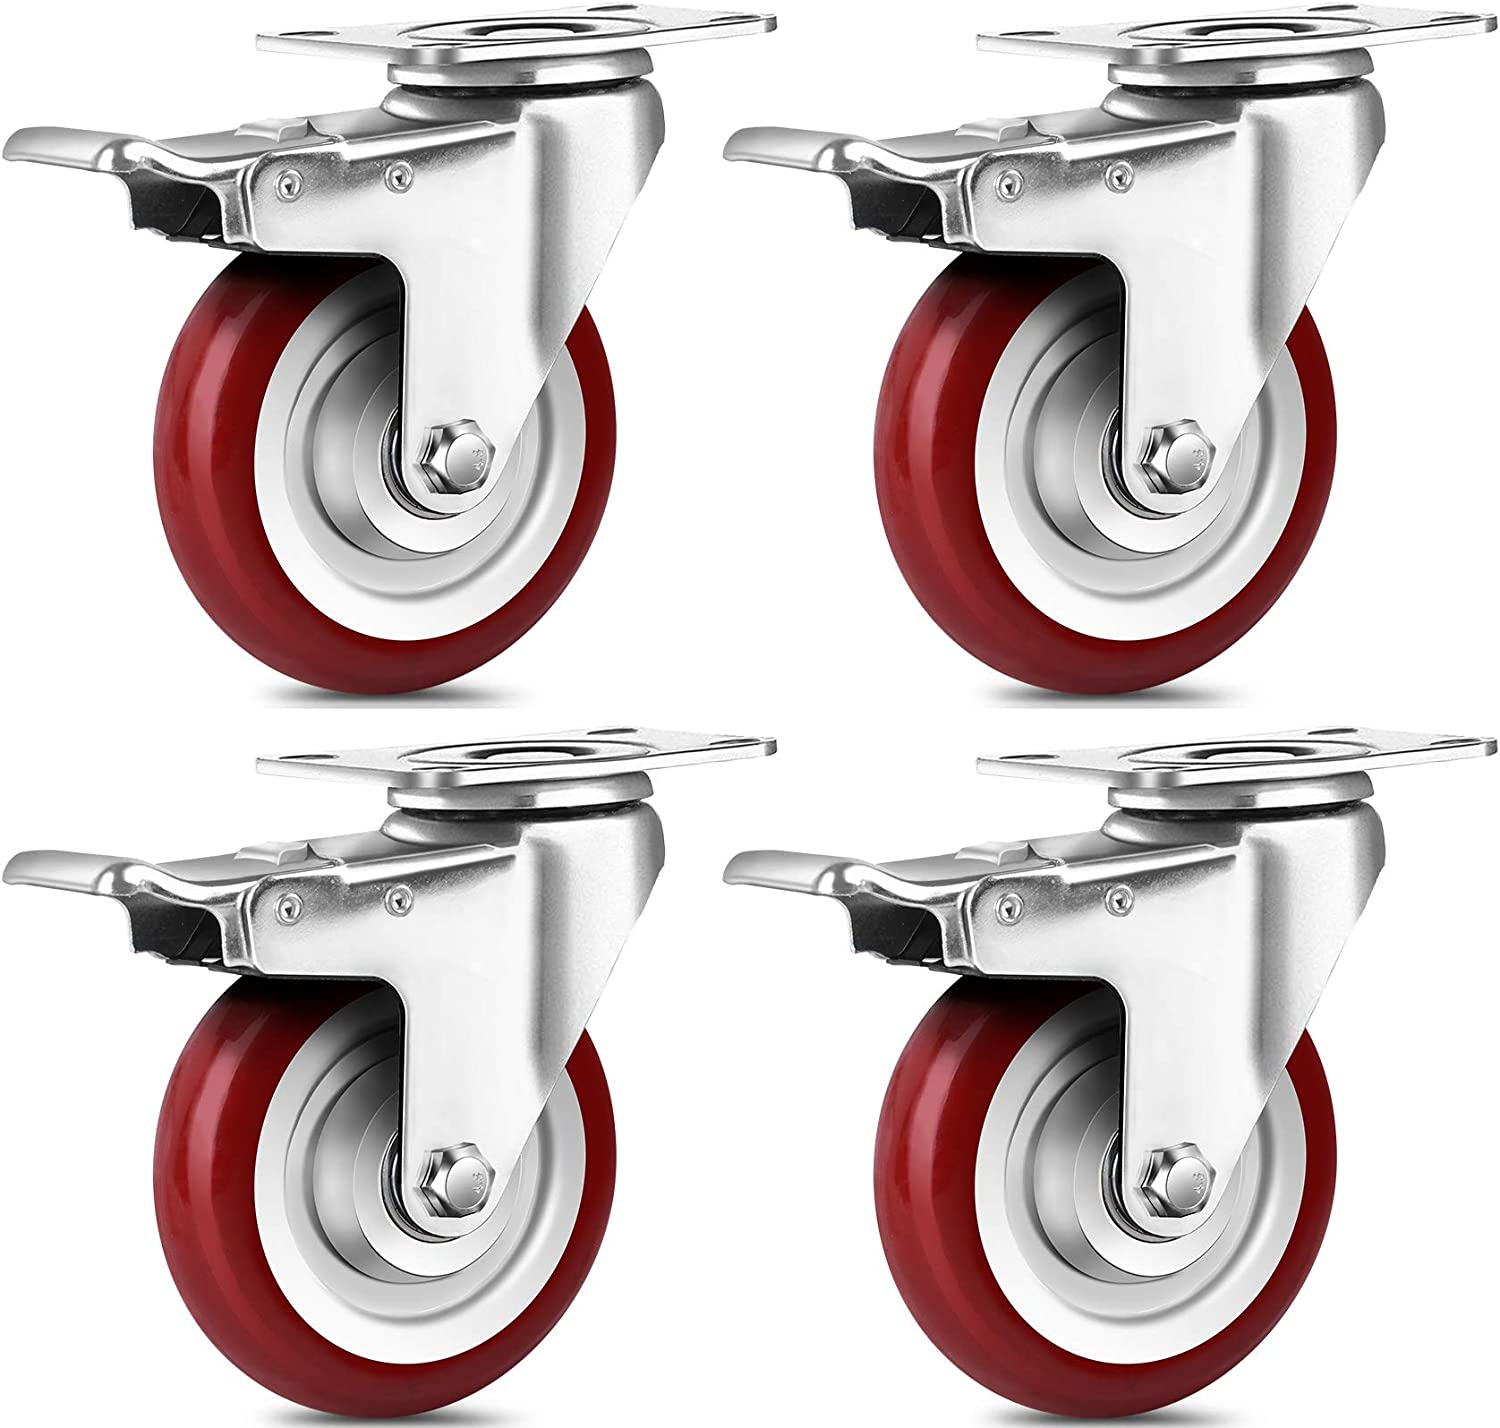 SPACECARE 4 Inches Swivel Caster Wheels, 1360Lbs with 360 Degree Heavy Duty Swivel Locking Casters with Brake Set of 4, No Noise Swivel Plate Castors